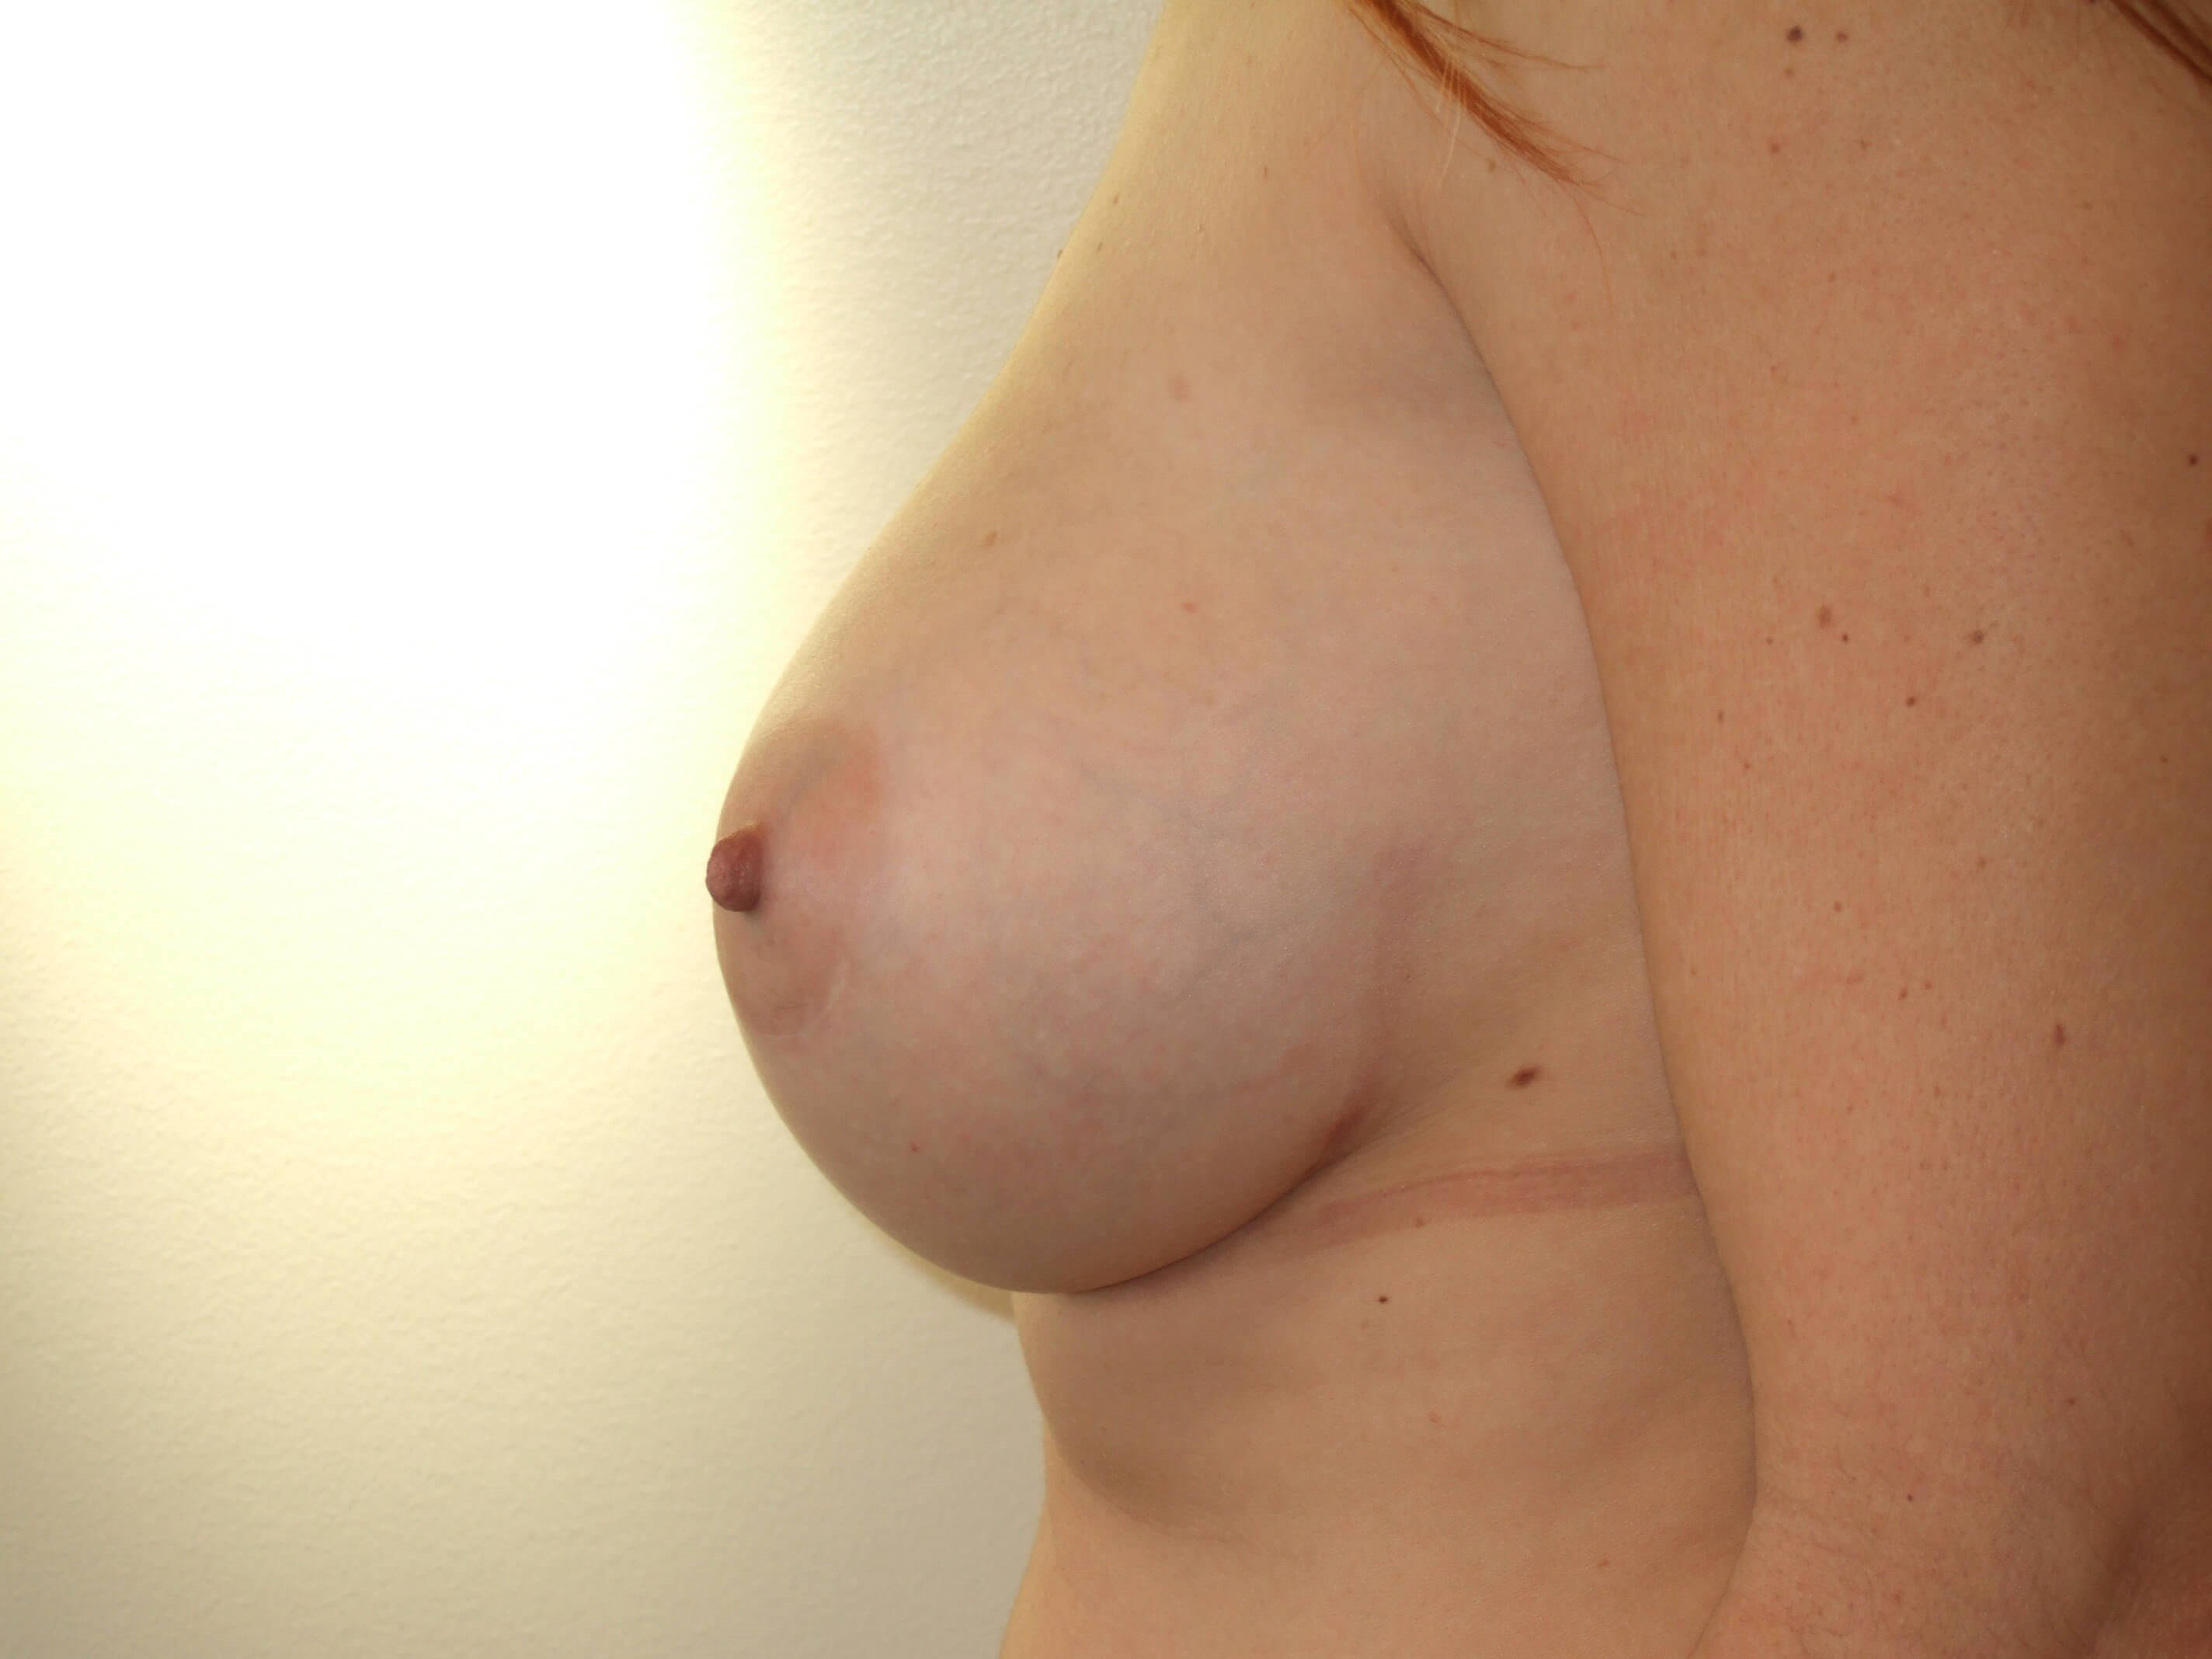 Left Side View After Capsulectomy